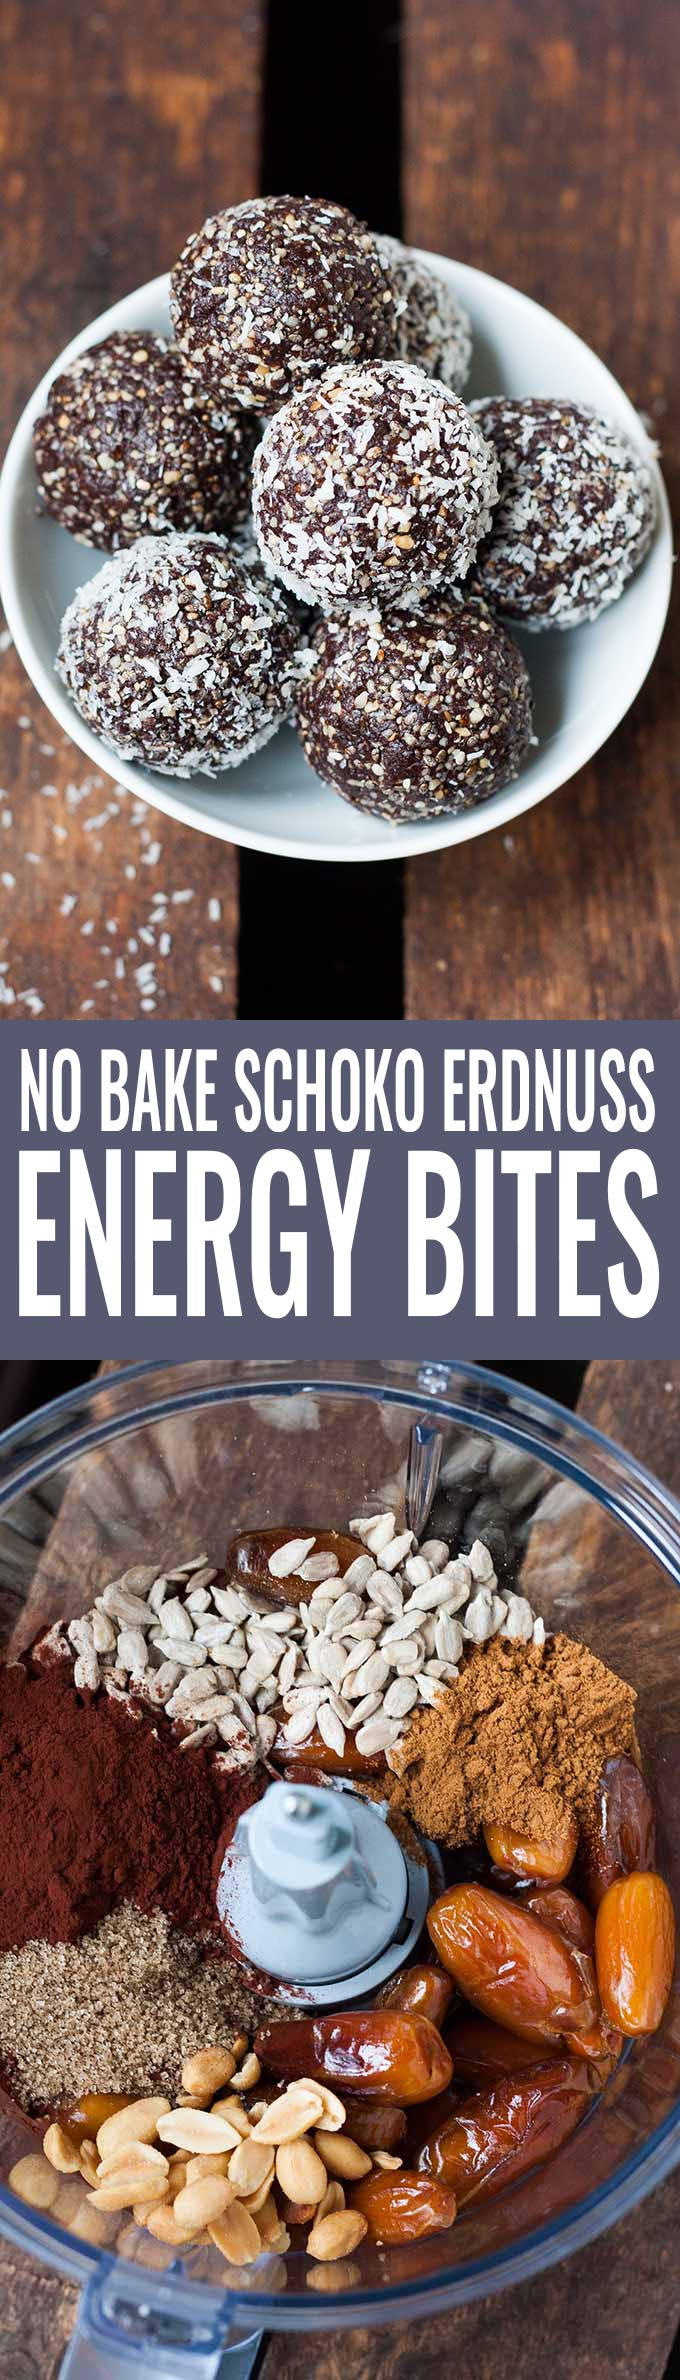 No Bake Schoko Erdnuss Energy Bites